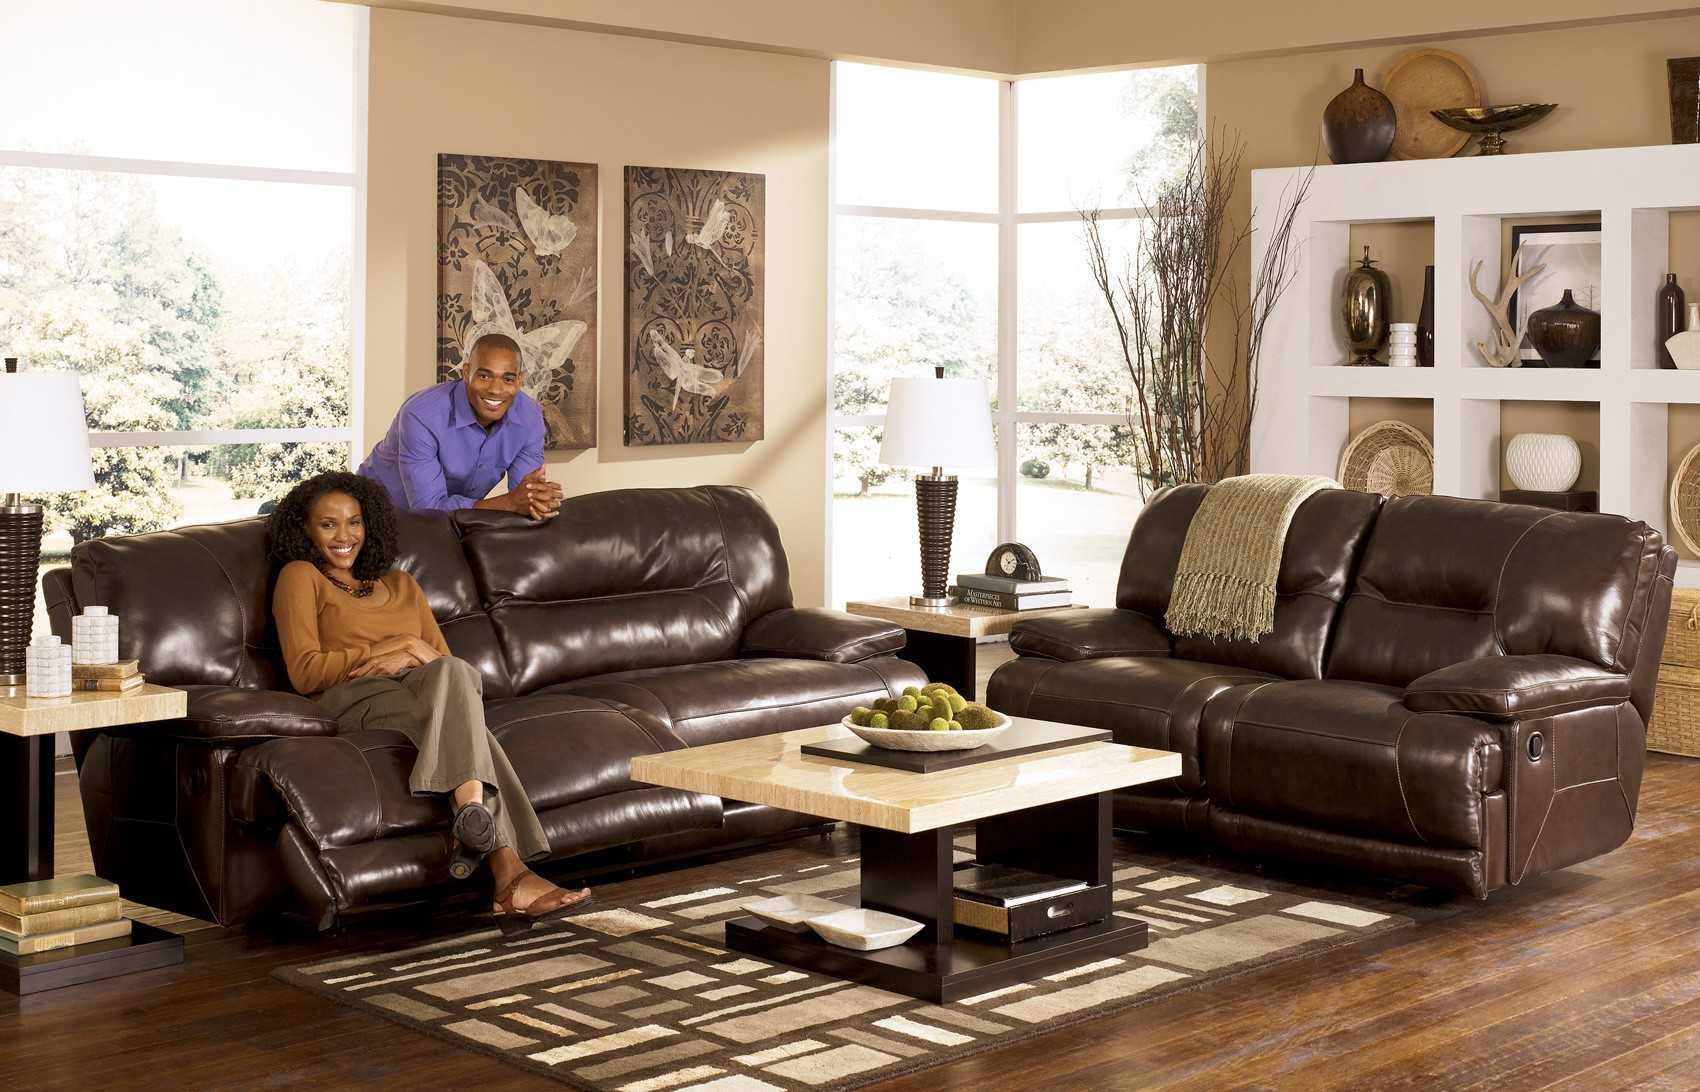 Ashley 42401 Exhilaration Chocolate Leather Reclining Sofa Set